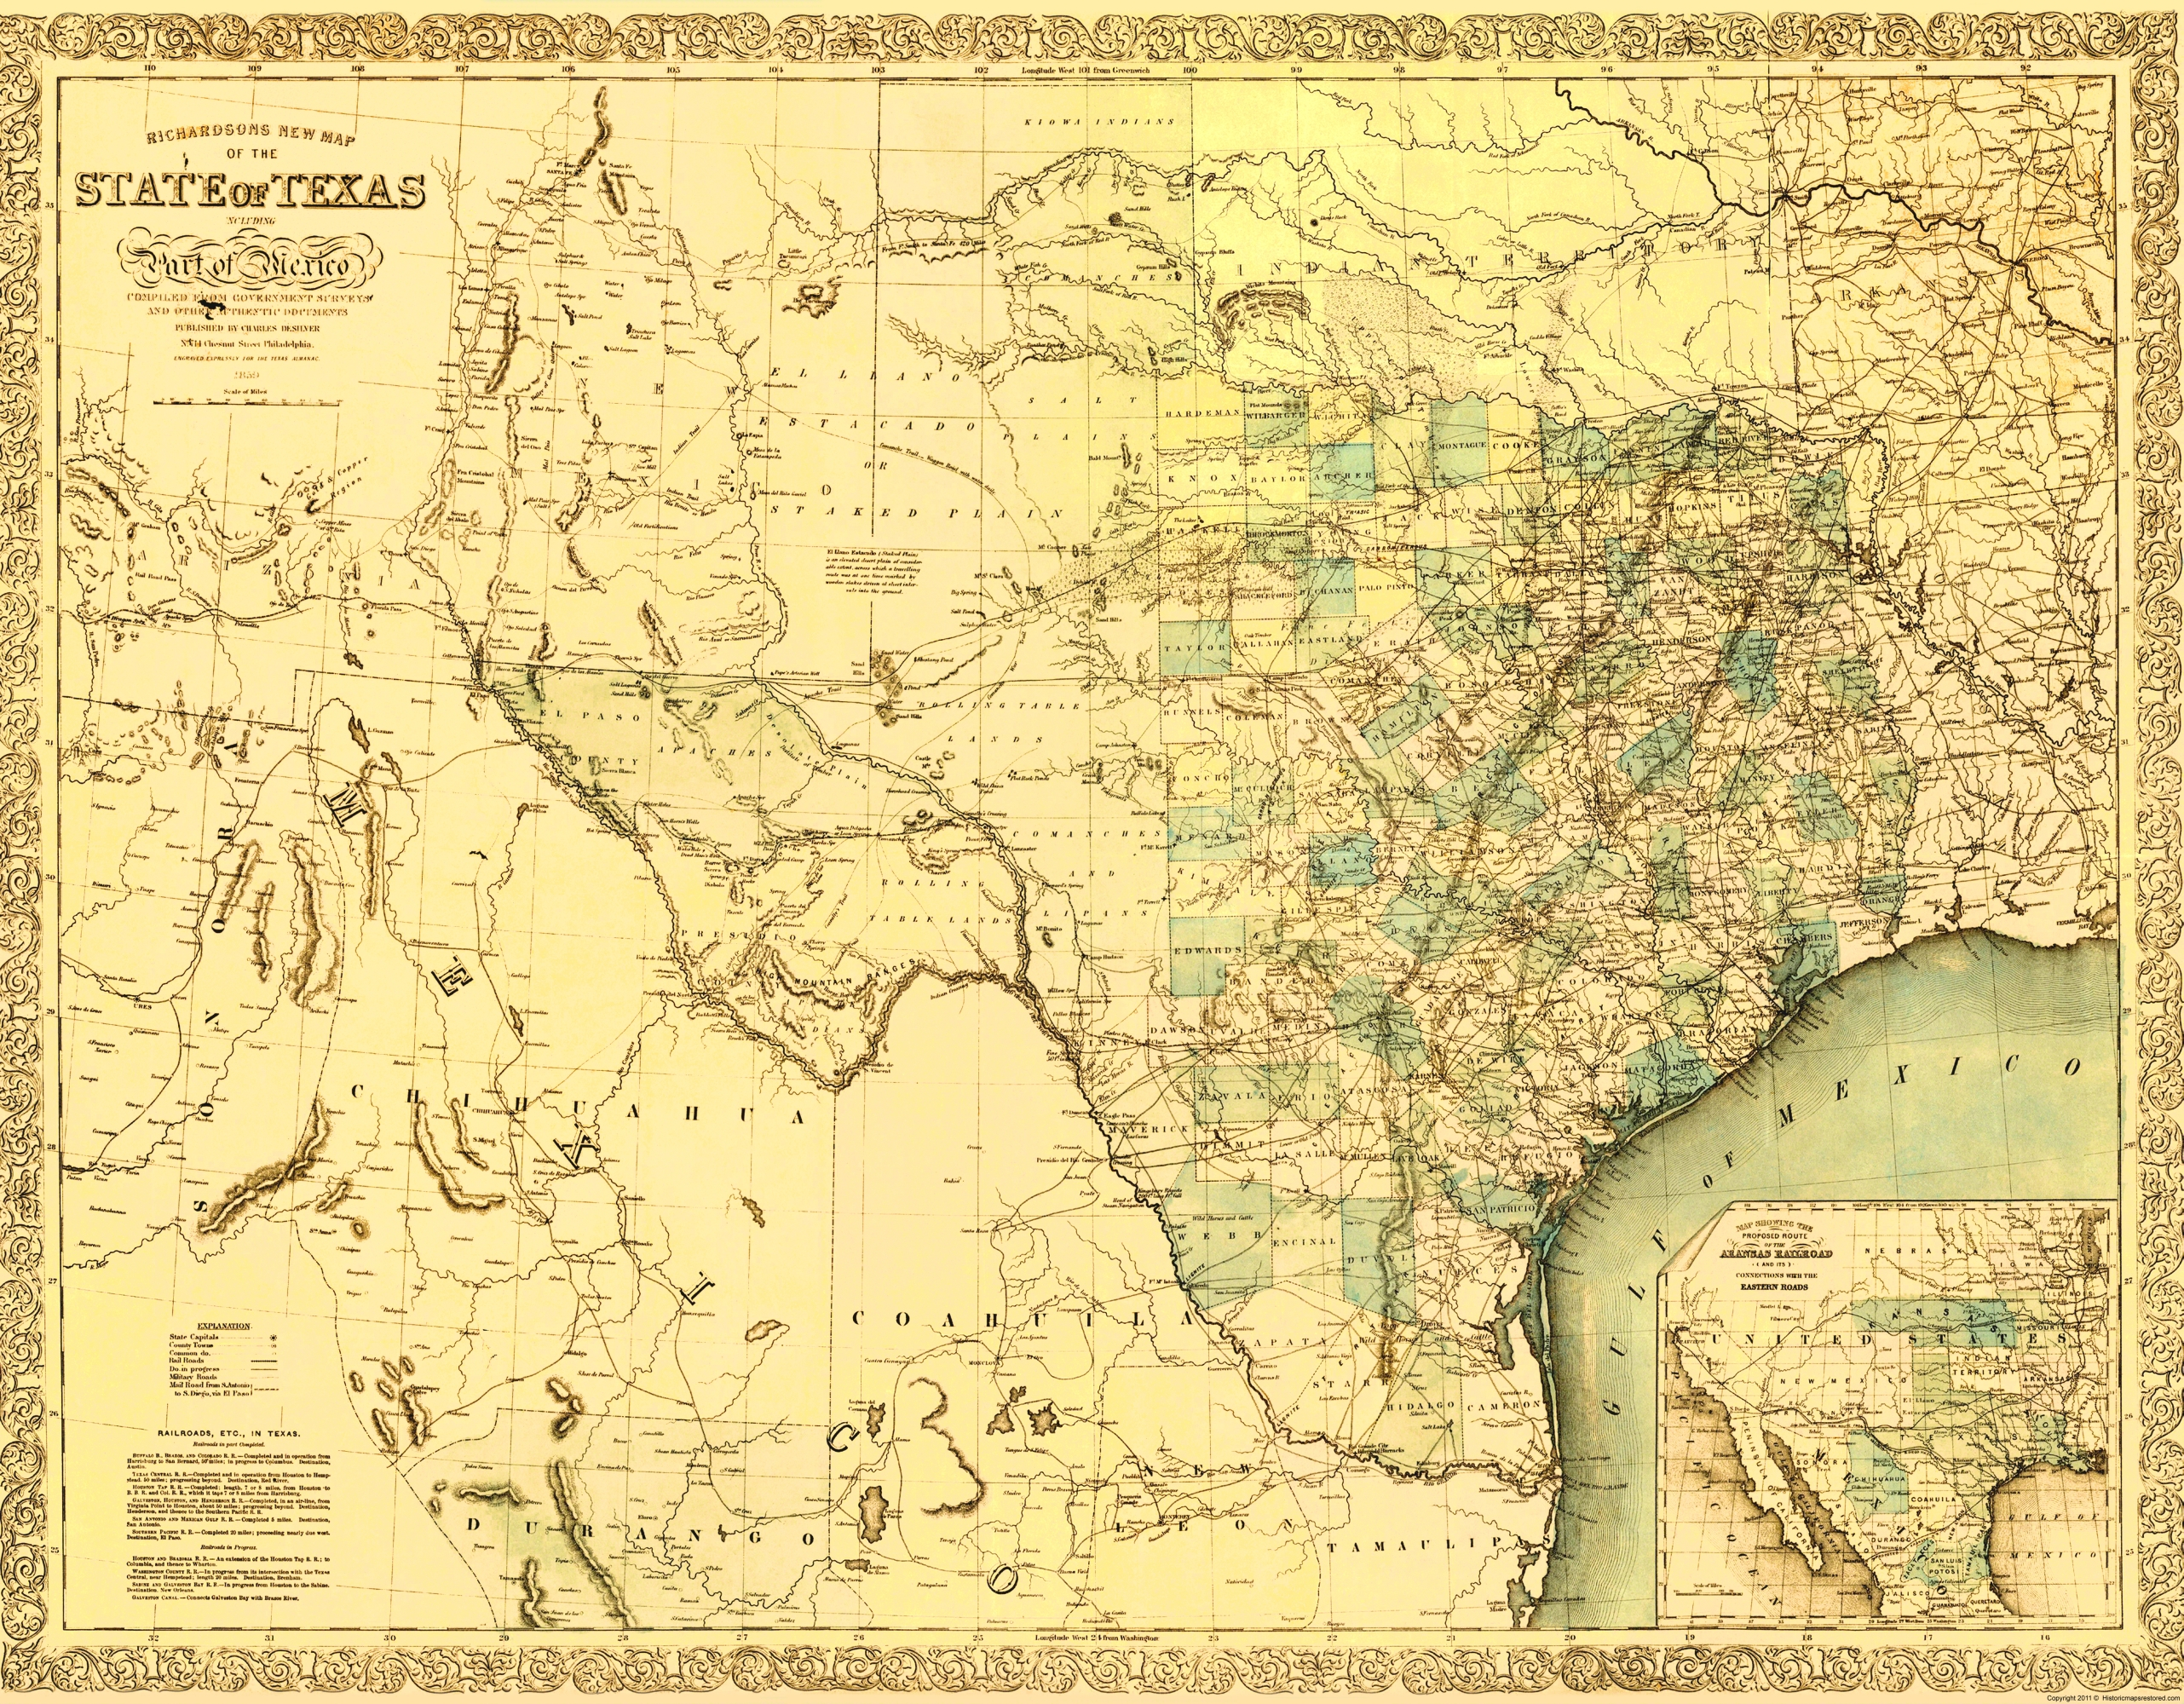 Map Of Northern Texas.Old State Map Texas And Northern Mexico Desilver 1859